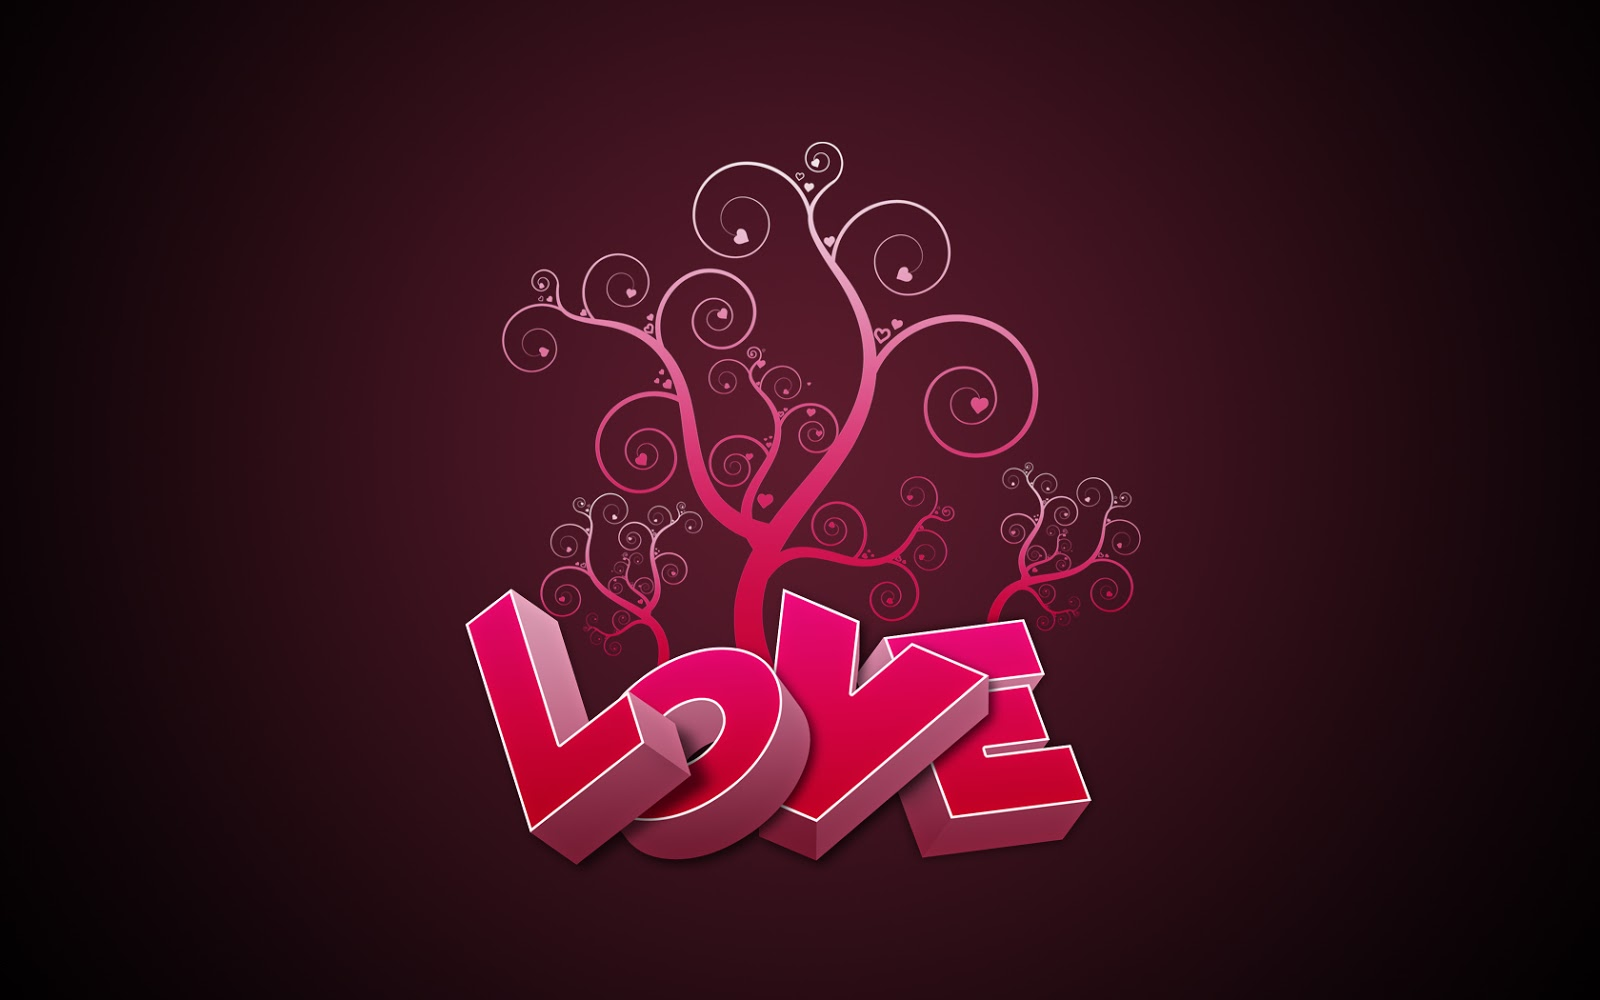 Love Wallpaper Hd For Desktop : HD Wallpapers: LOVE HD WALLPAPERS